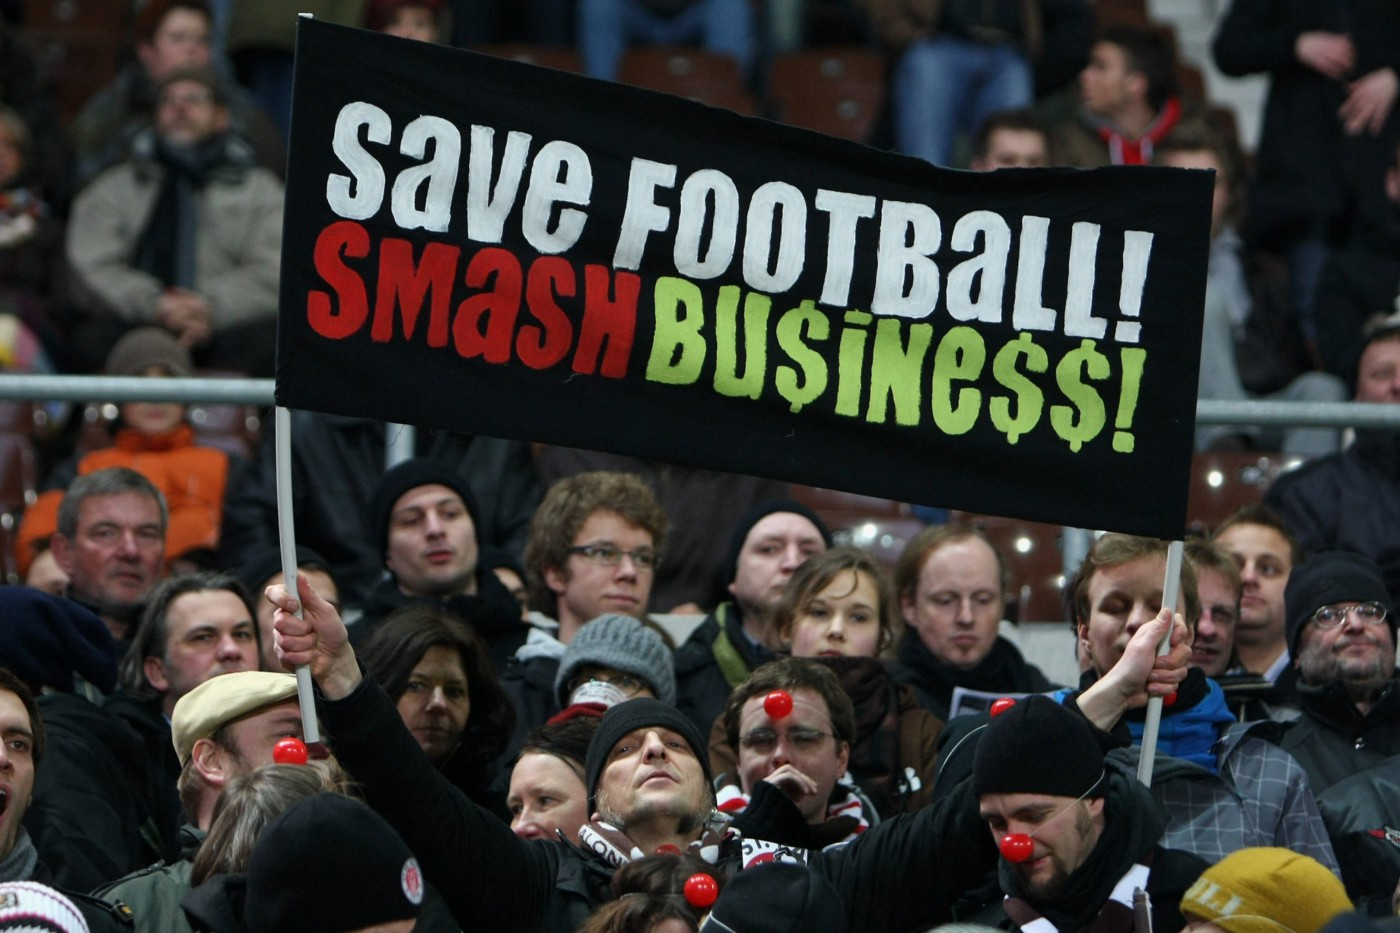 """Fans of German football team St Pauli show their dismay at the influence of big business on football prior to a match against FC Kaiserslautern in Hamburg with a banner saying: """"Save football! Smash Business!"""""""